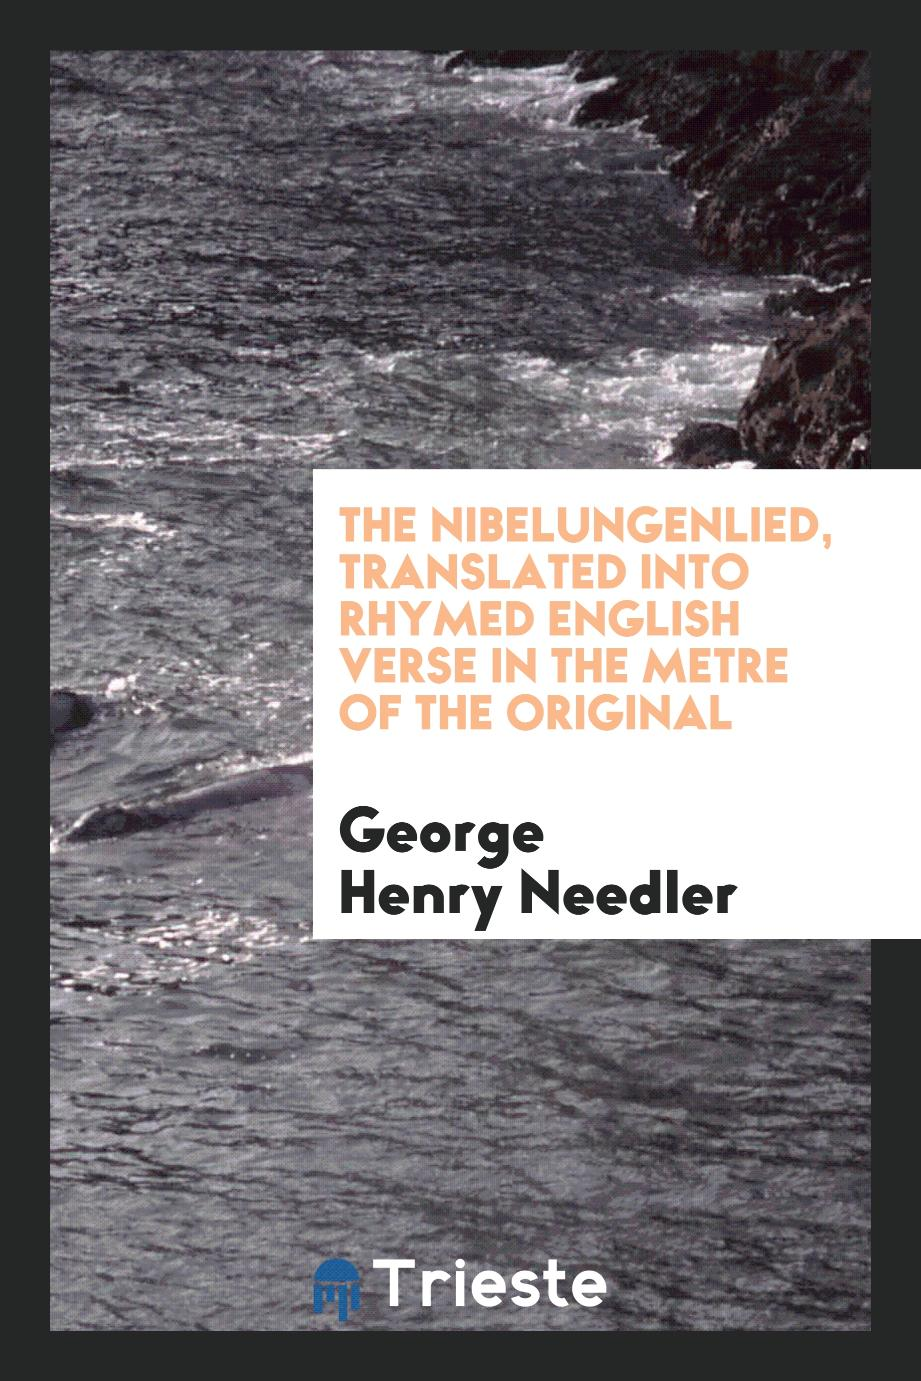 The Nibelungenlied, Translated into Rhymed English Verse in the Metre of the Original